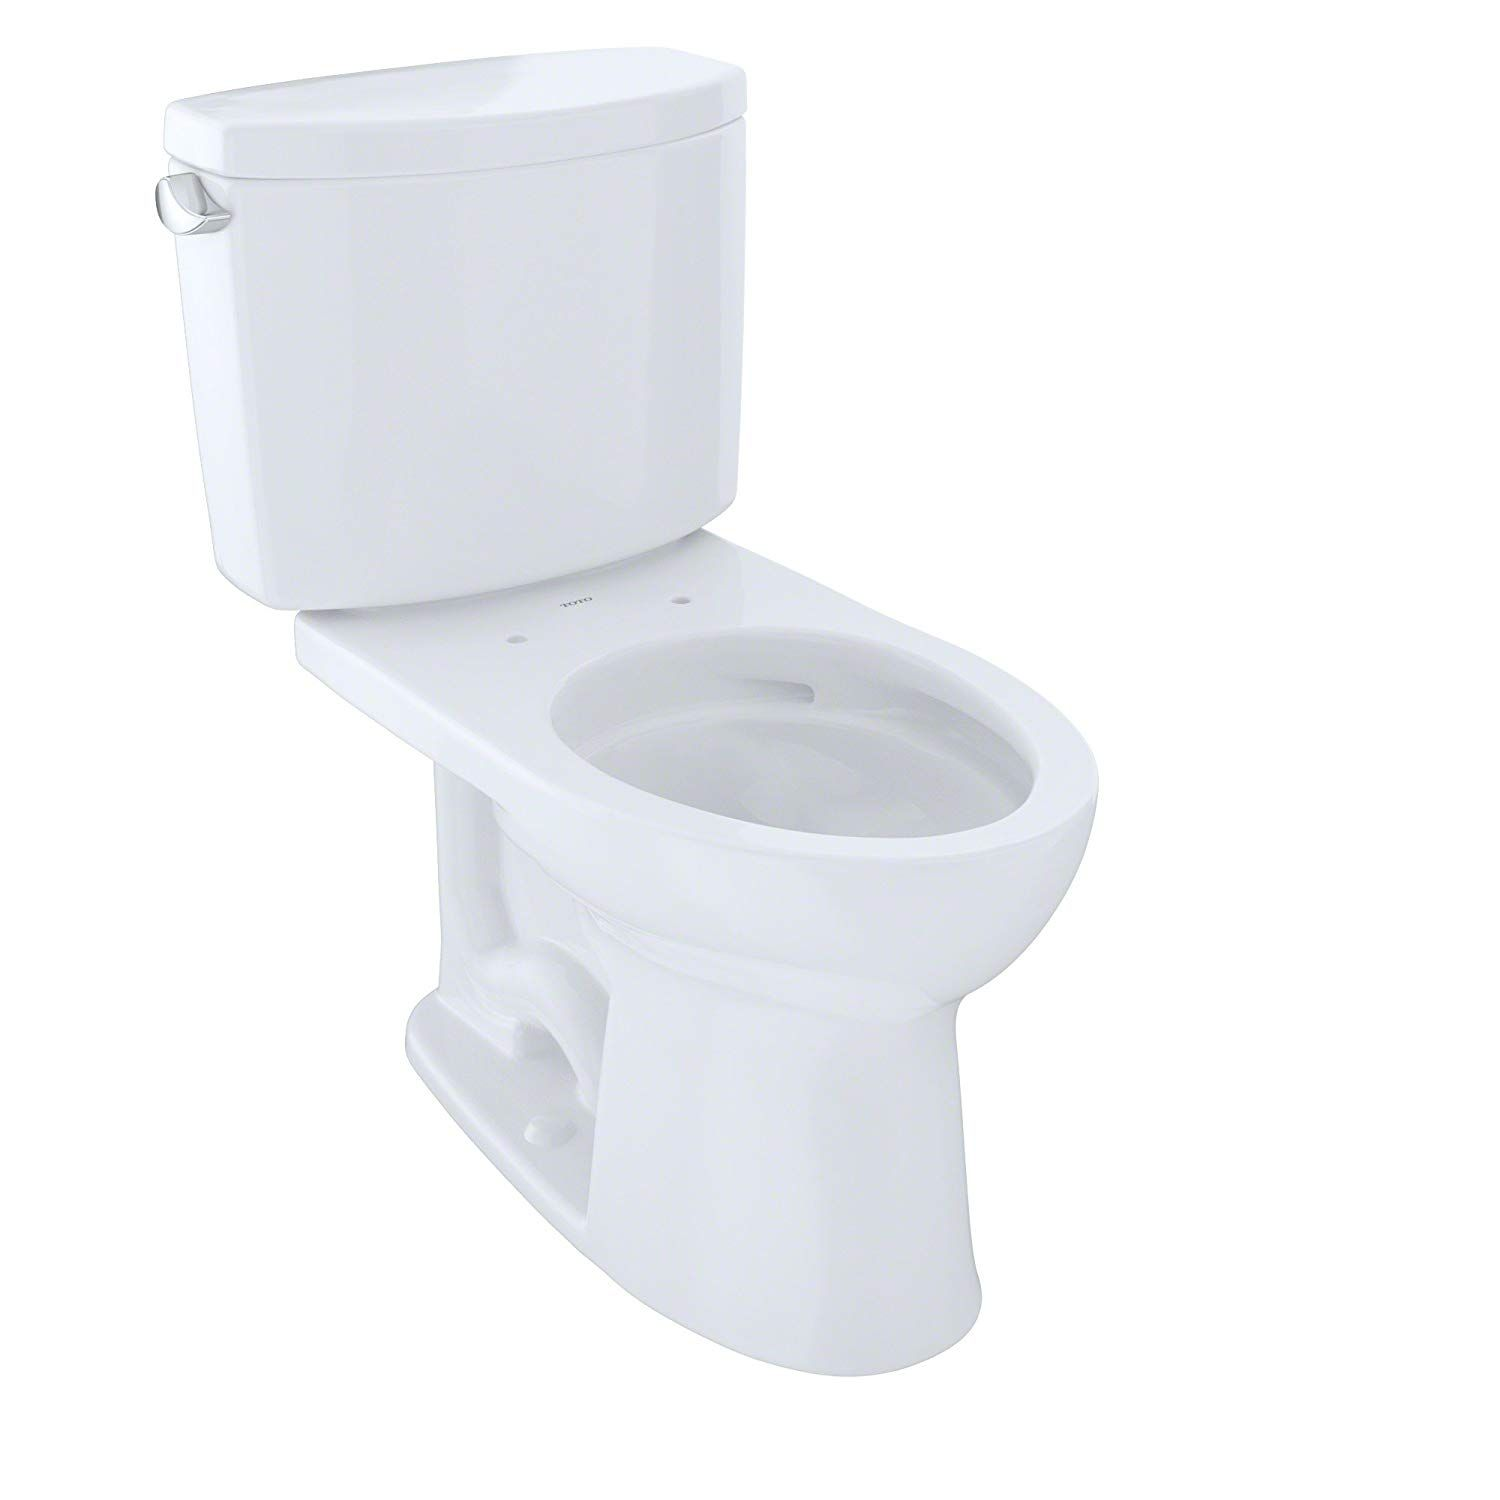 Best Toilet 2020 Modern Luxury Flush Toilets Reviews Guide Toto Toilet Water Sense Toilet